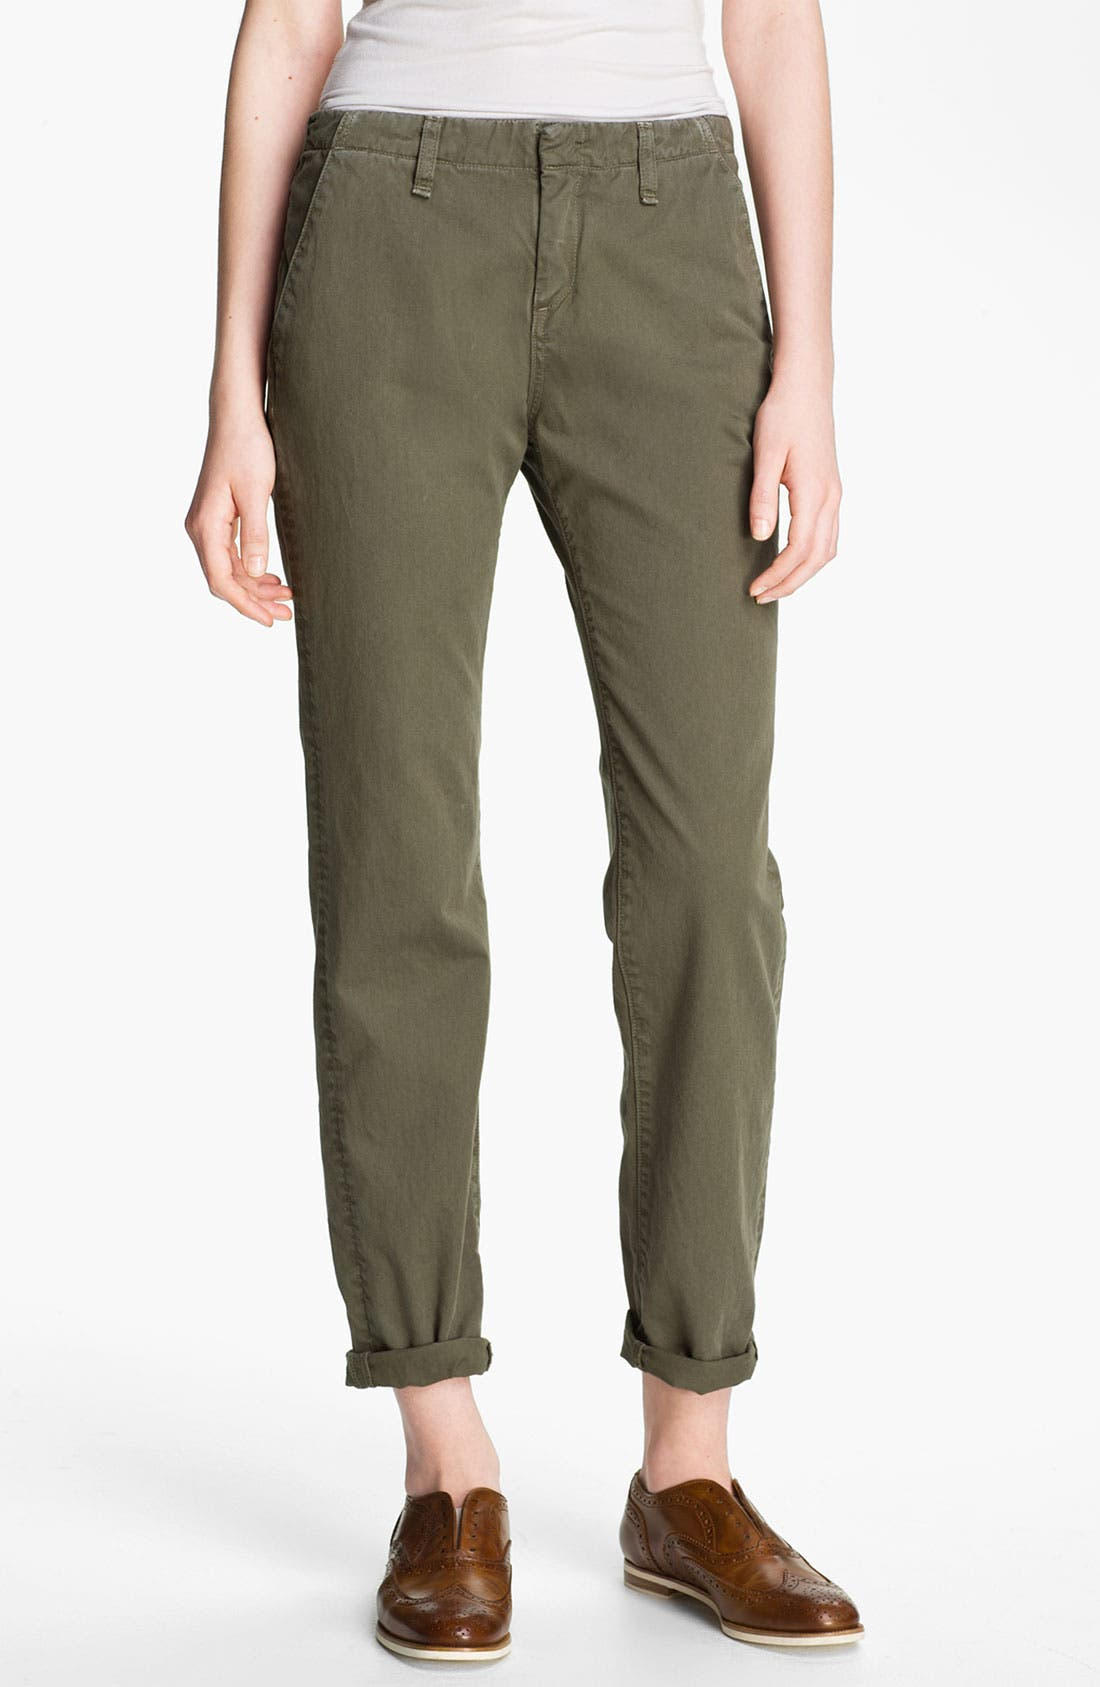 Alternate Image 1 Selected - rag & bone/JEAN 'Portobello' Twill Pants